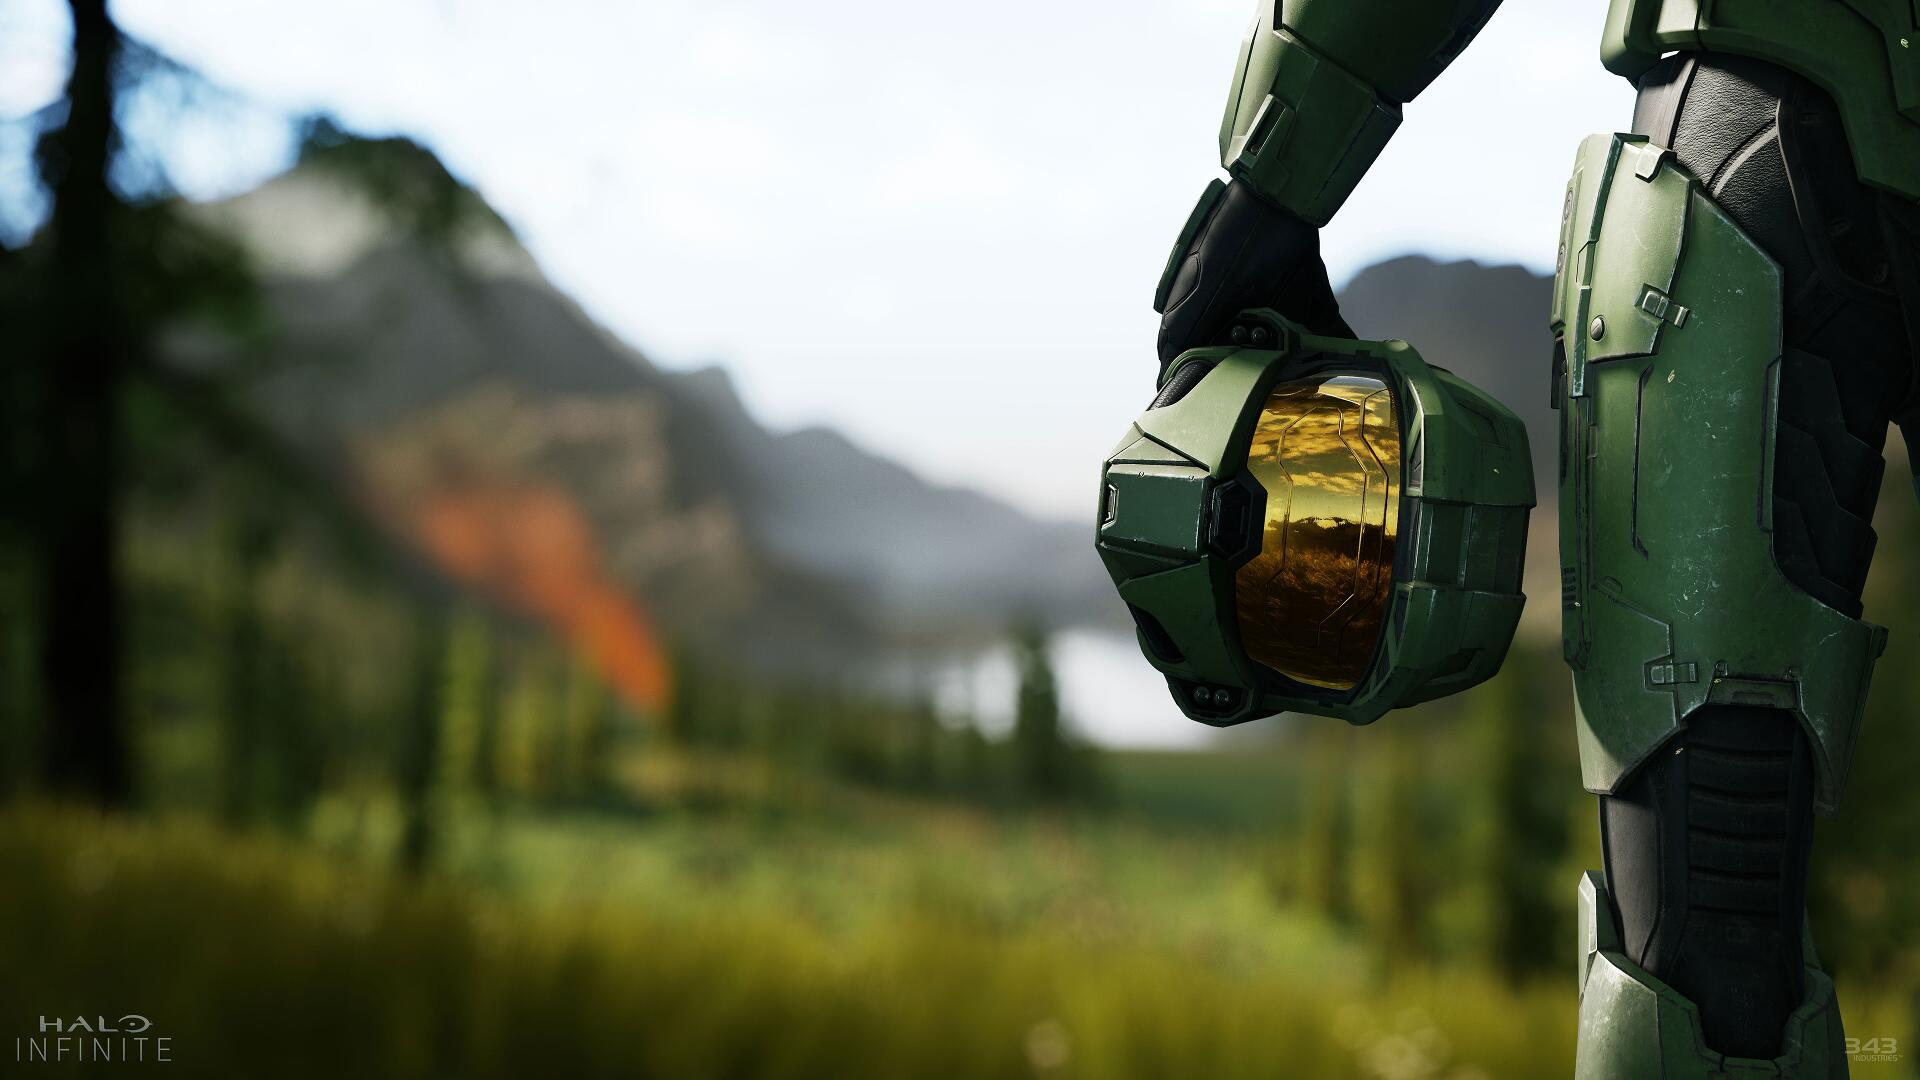 Halo Infinite now scheduled for release in 'Fall 2021'